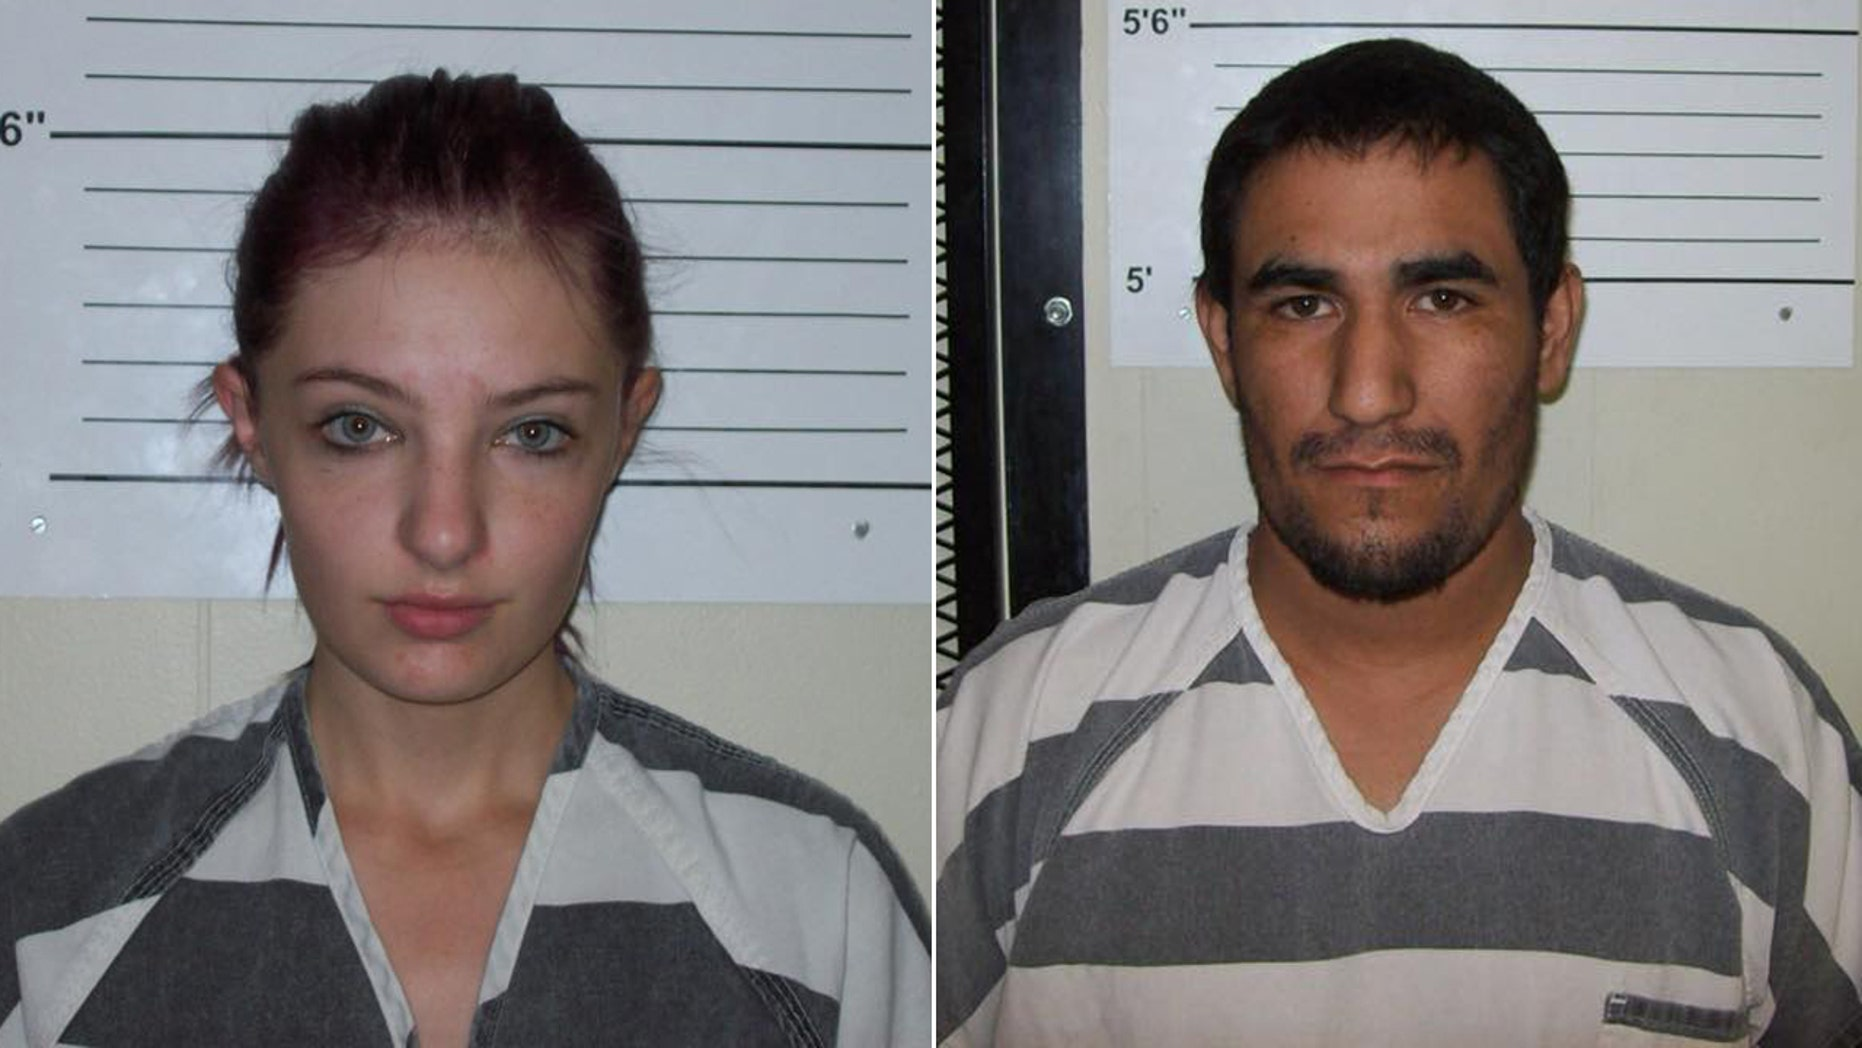 Cheyanne Harris, 20, and Zachary Koehn, 28, were charged with first-degree murder and child endangerment after their 4-month-old son was found dead and infested with maggots in their apartment, investigators said.